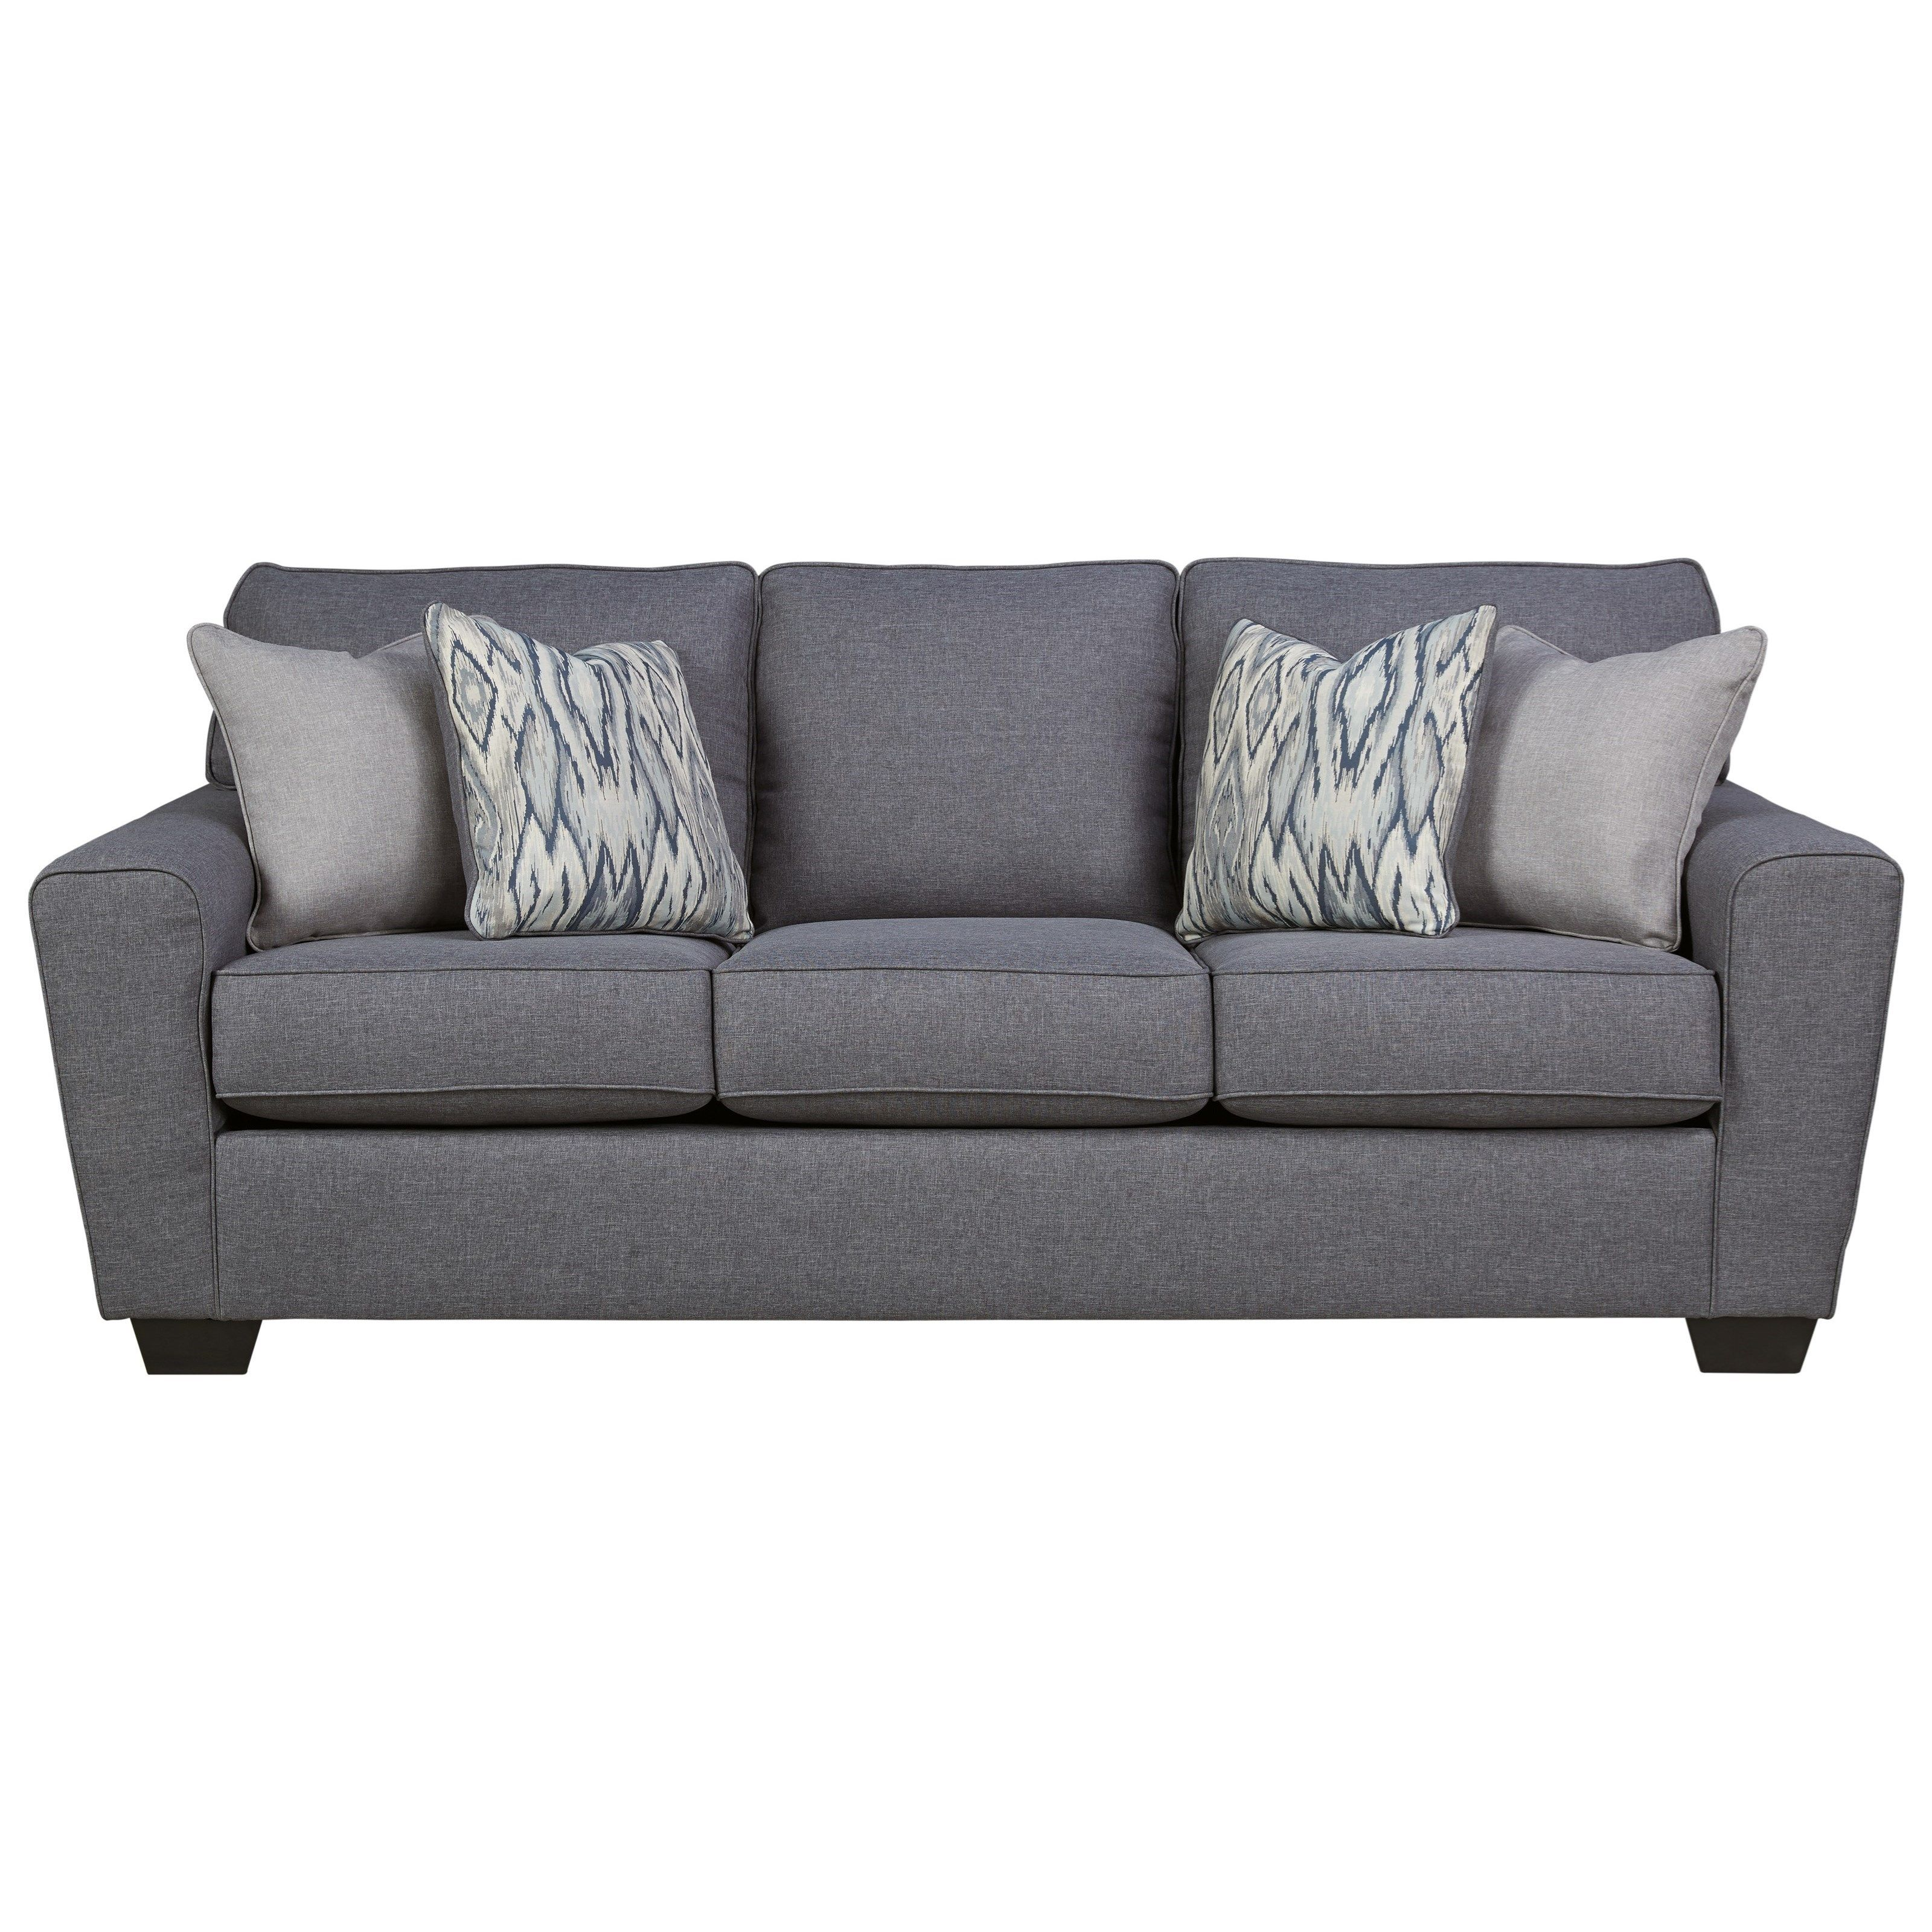 Ashley Furniture Couches Wild Country Fine Arts